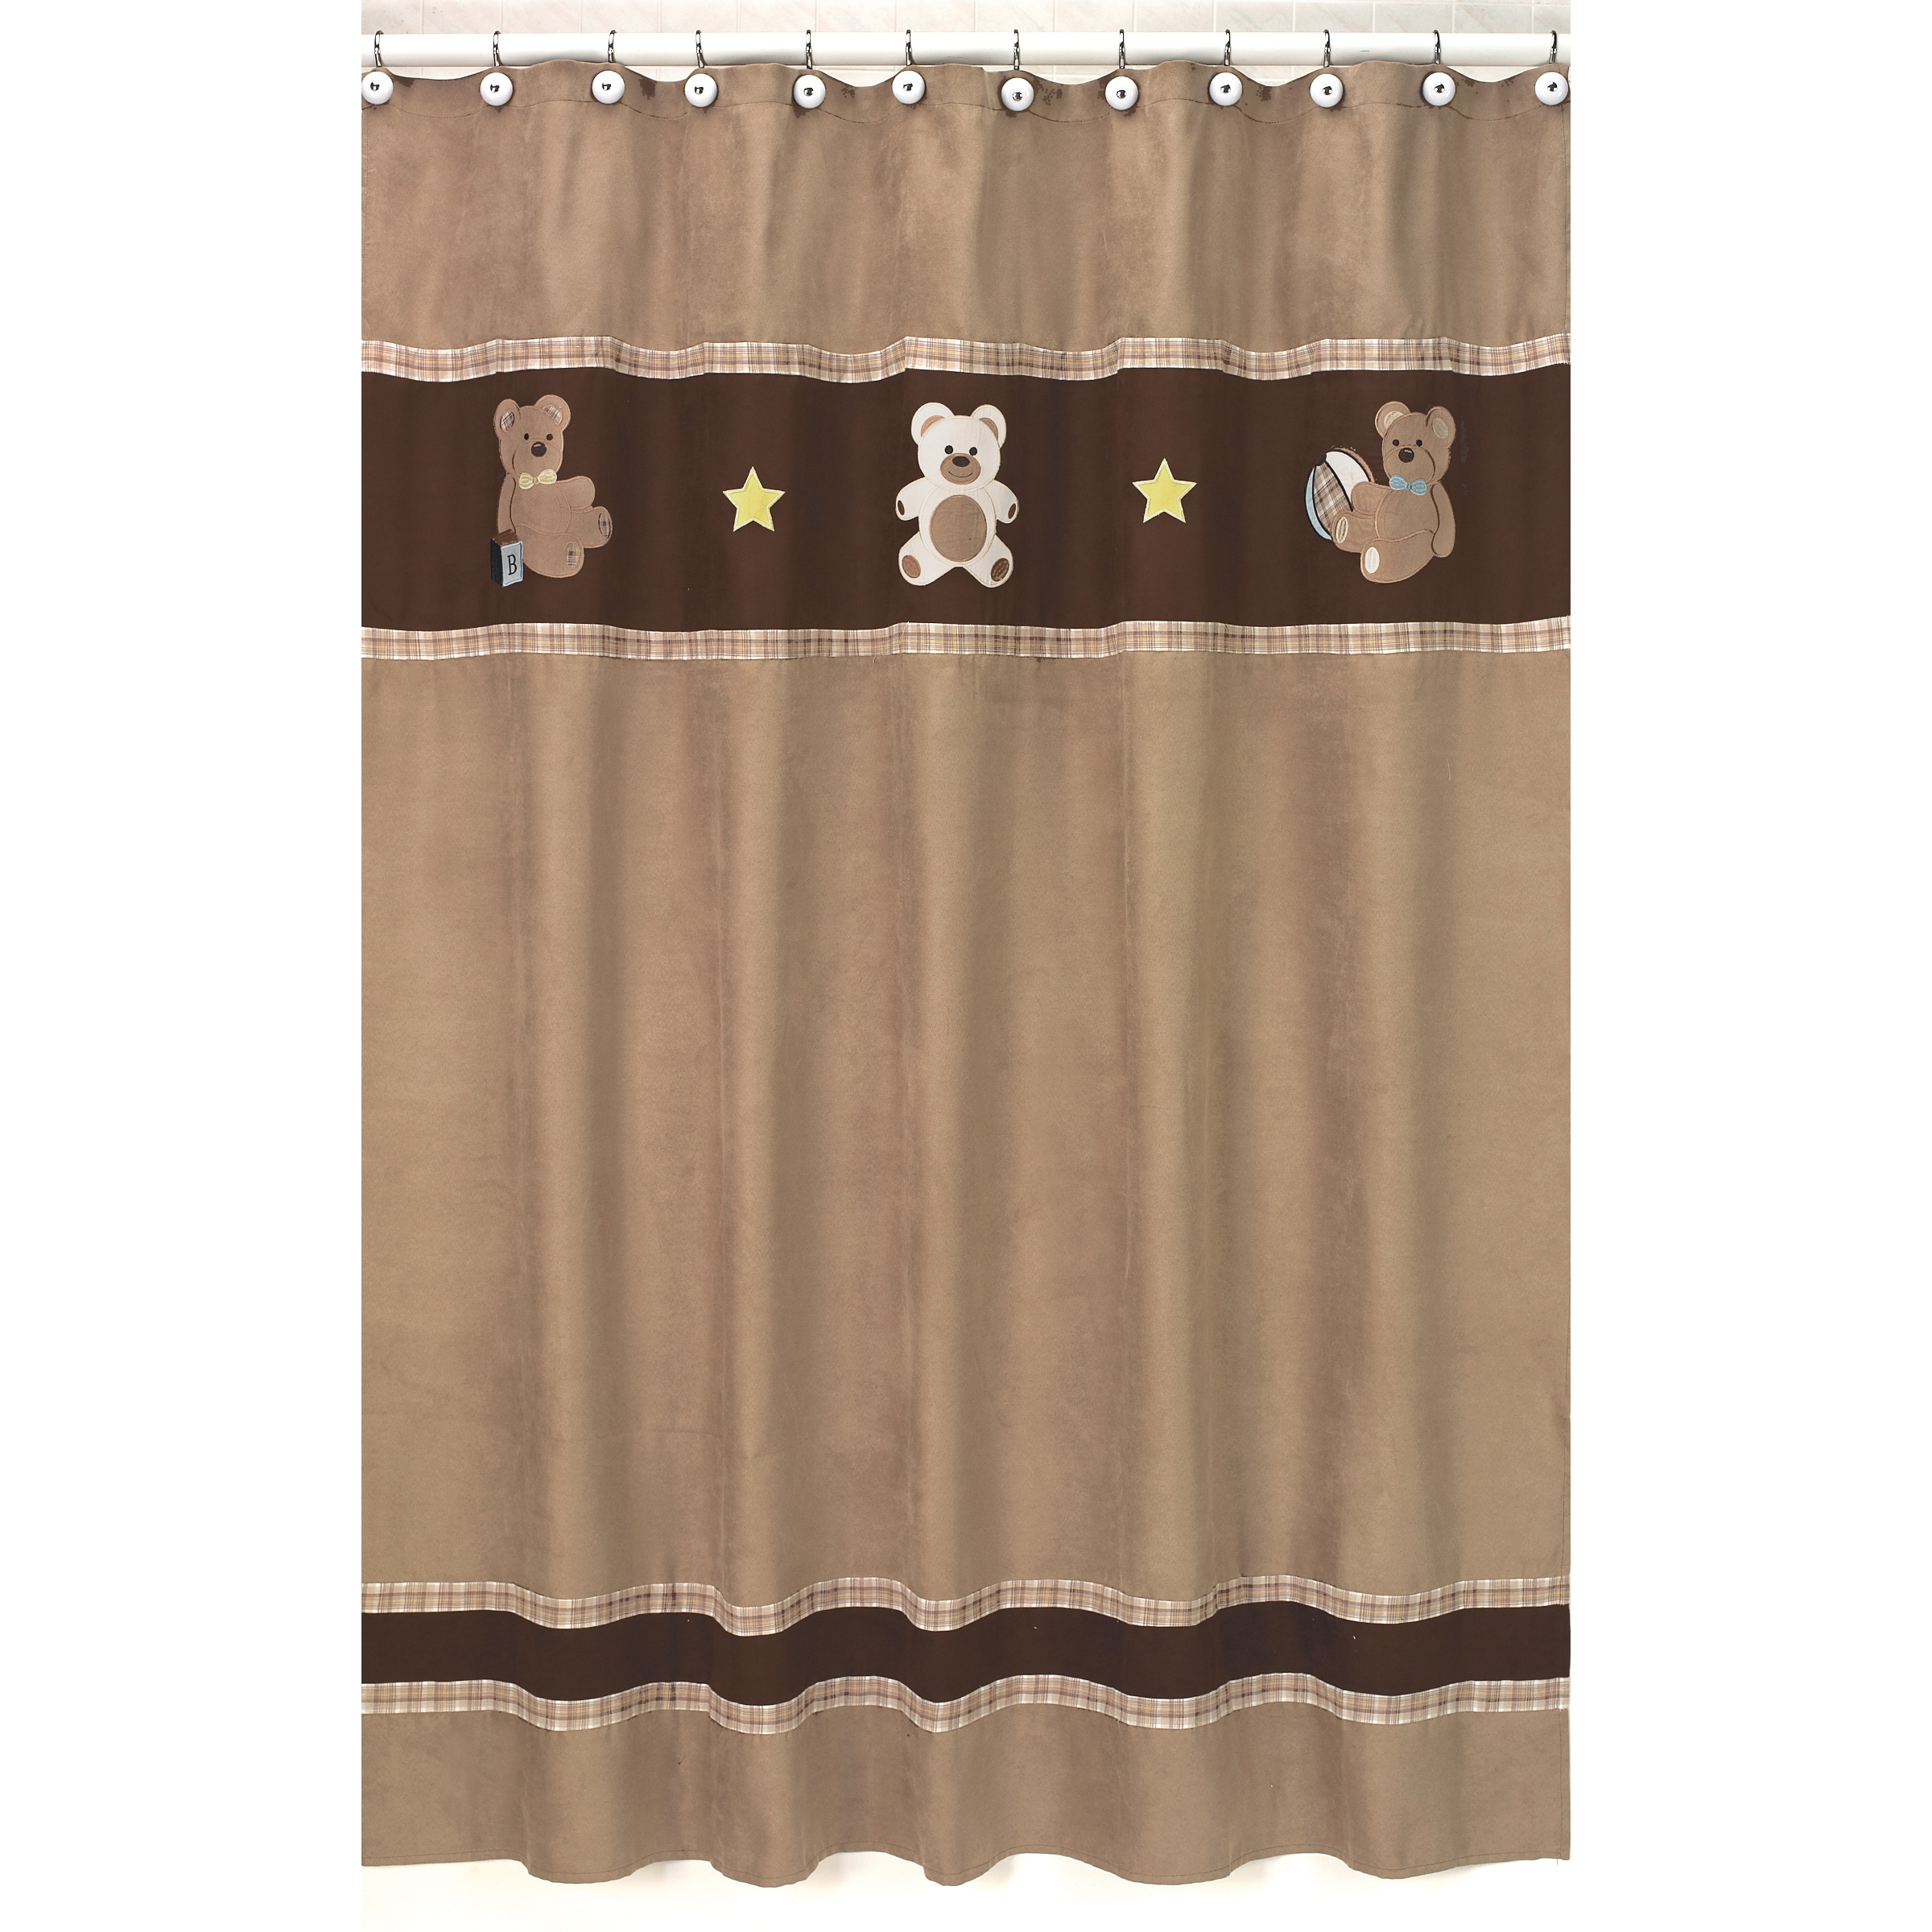 Sweet Jojo Designs Chocolate Teddy Bear Kids Shower Curtain at Sears.com